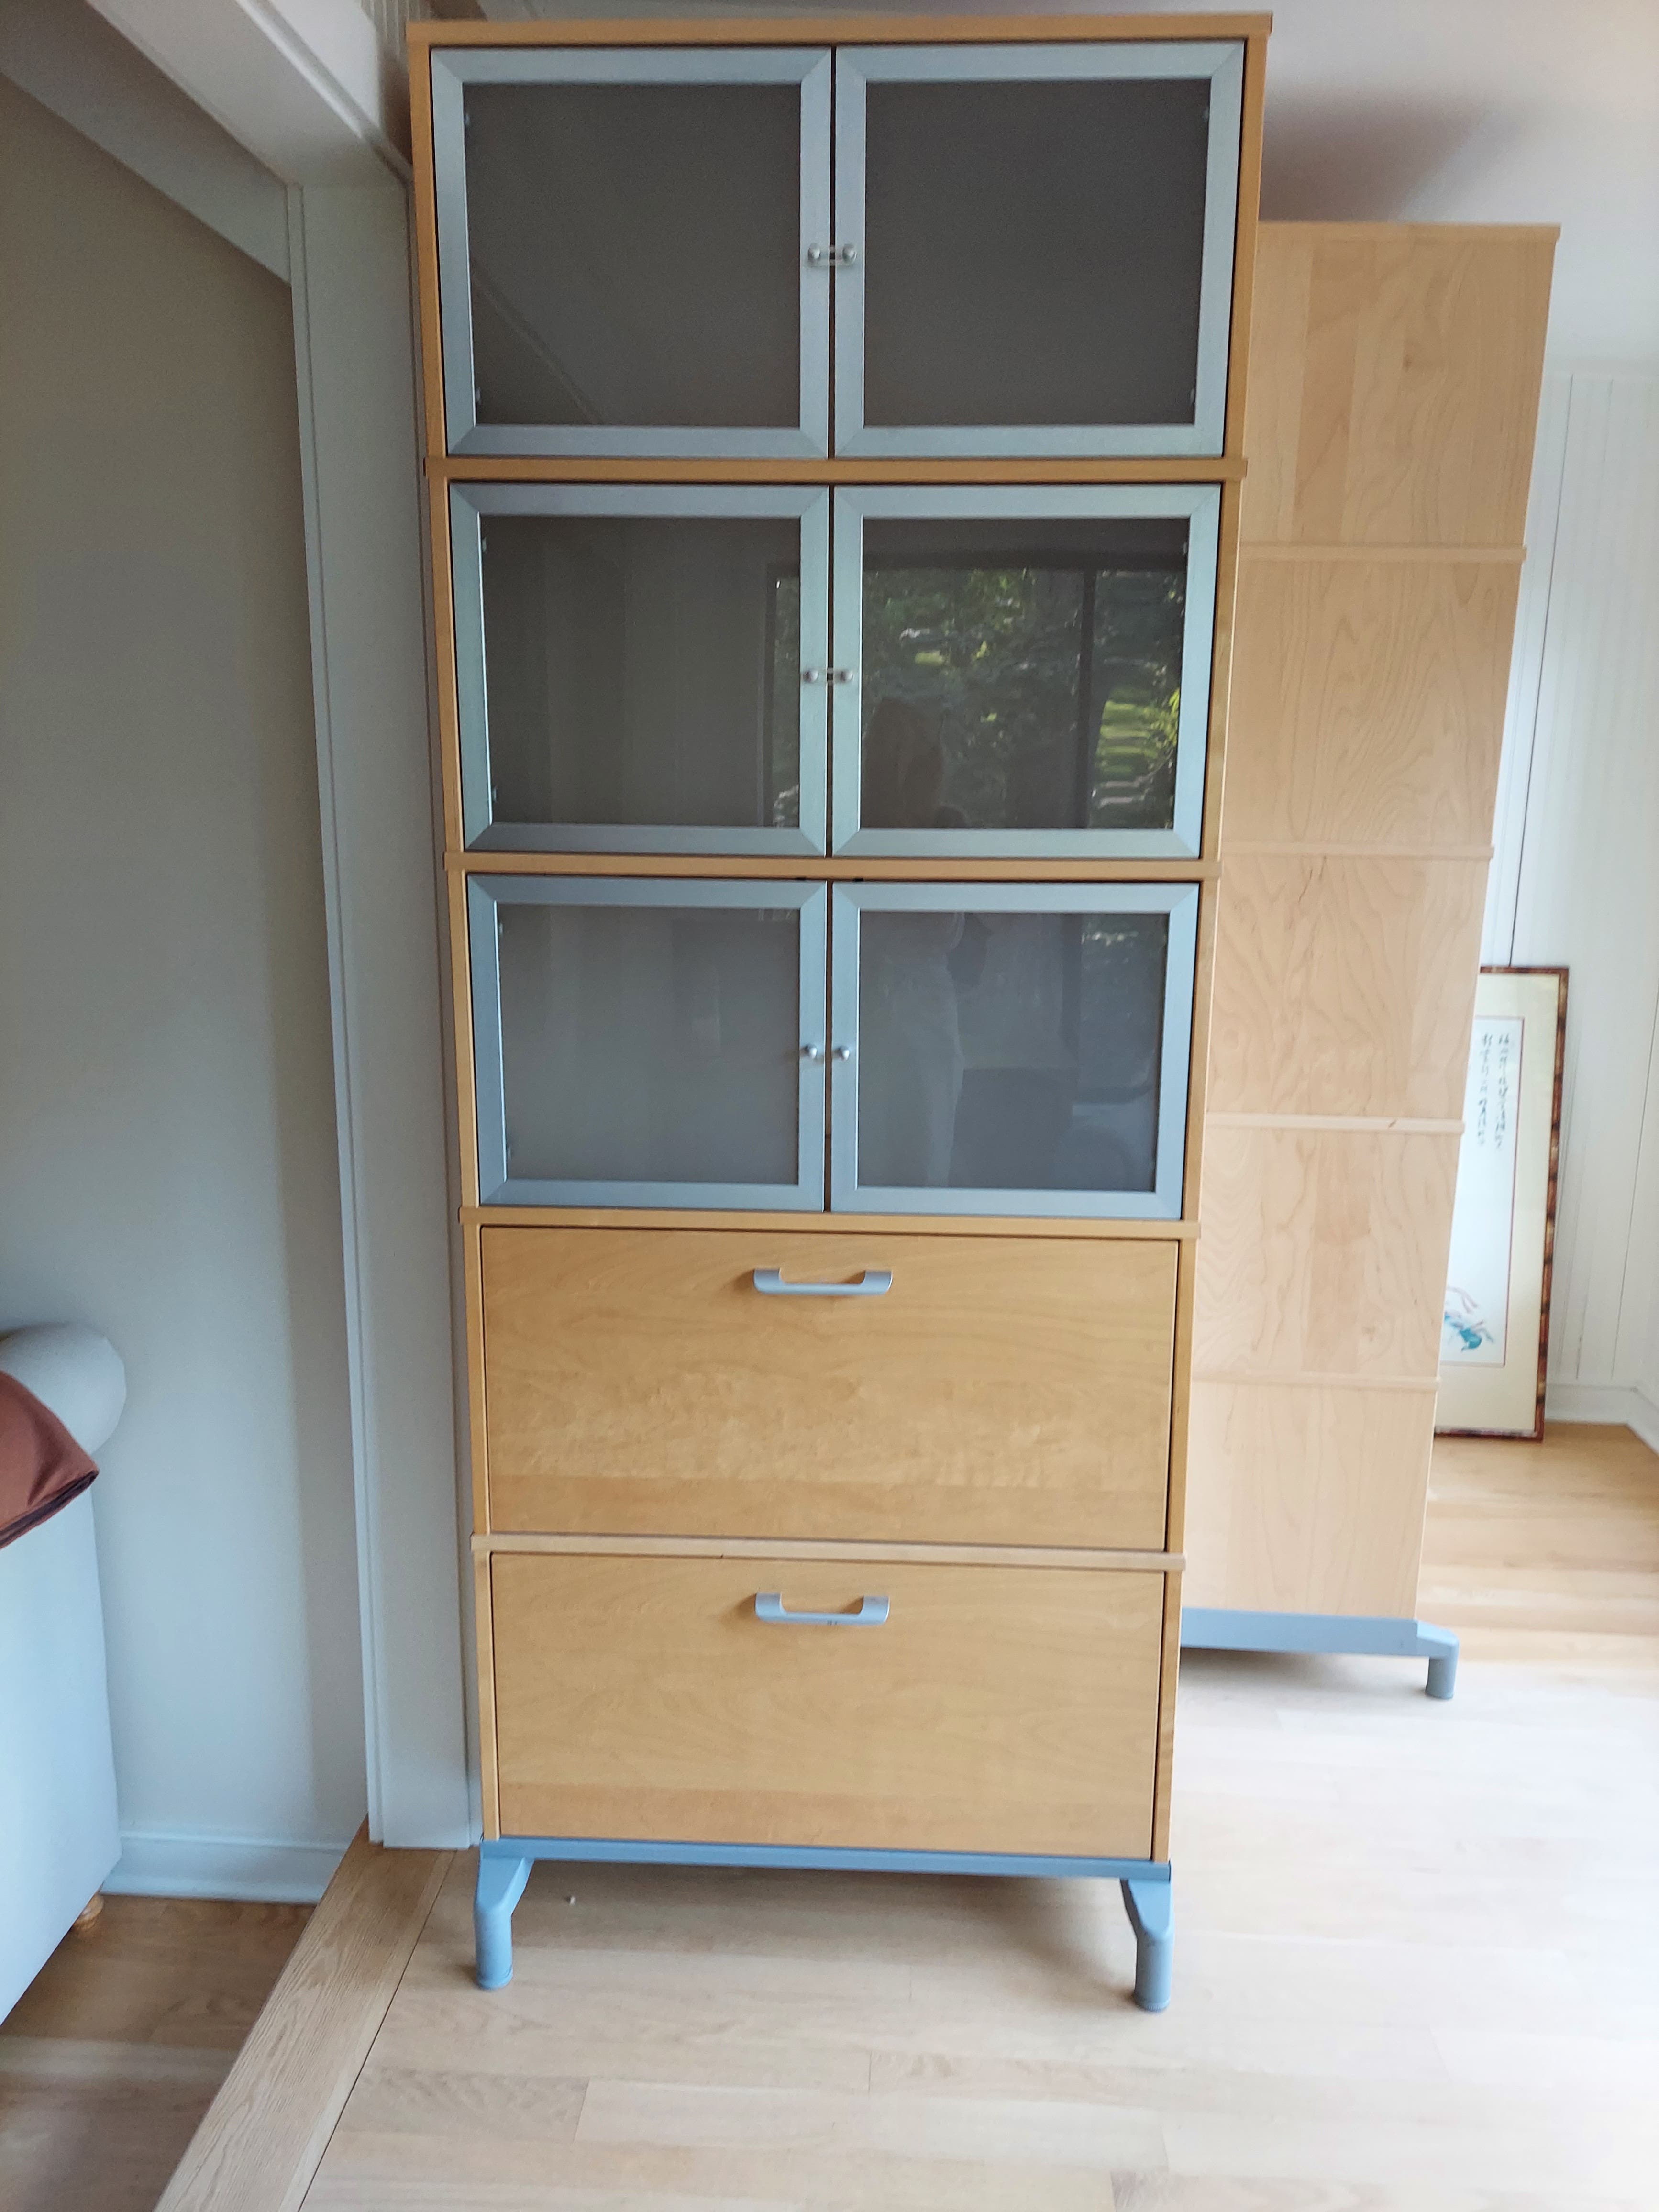 Business Moving Sale- Items for Home or Office